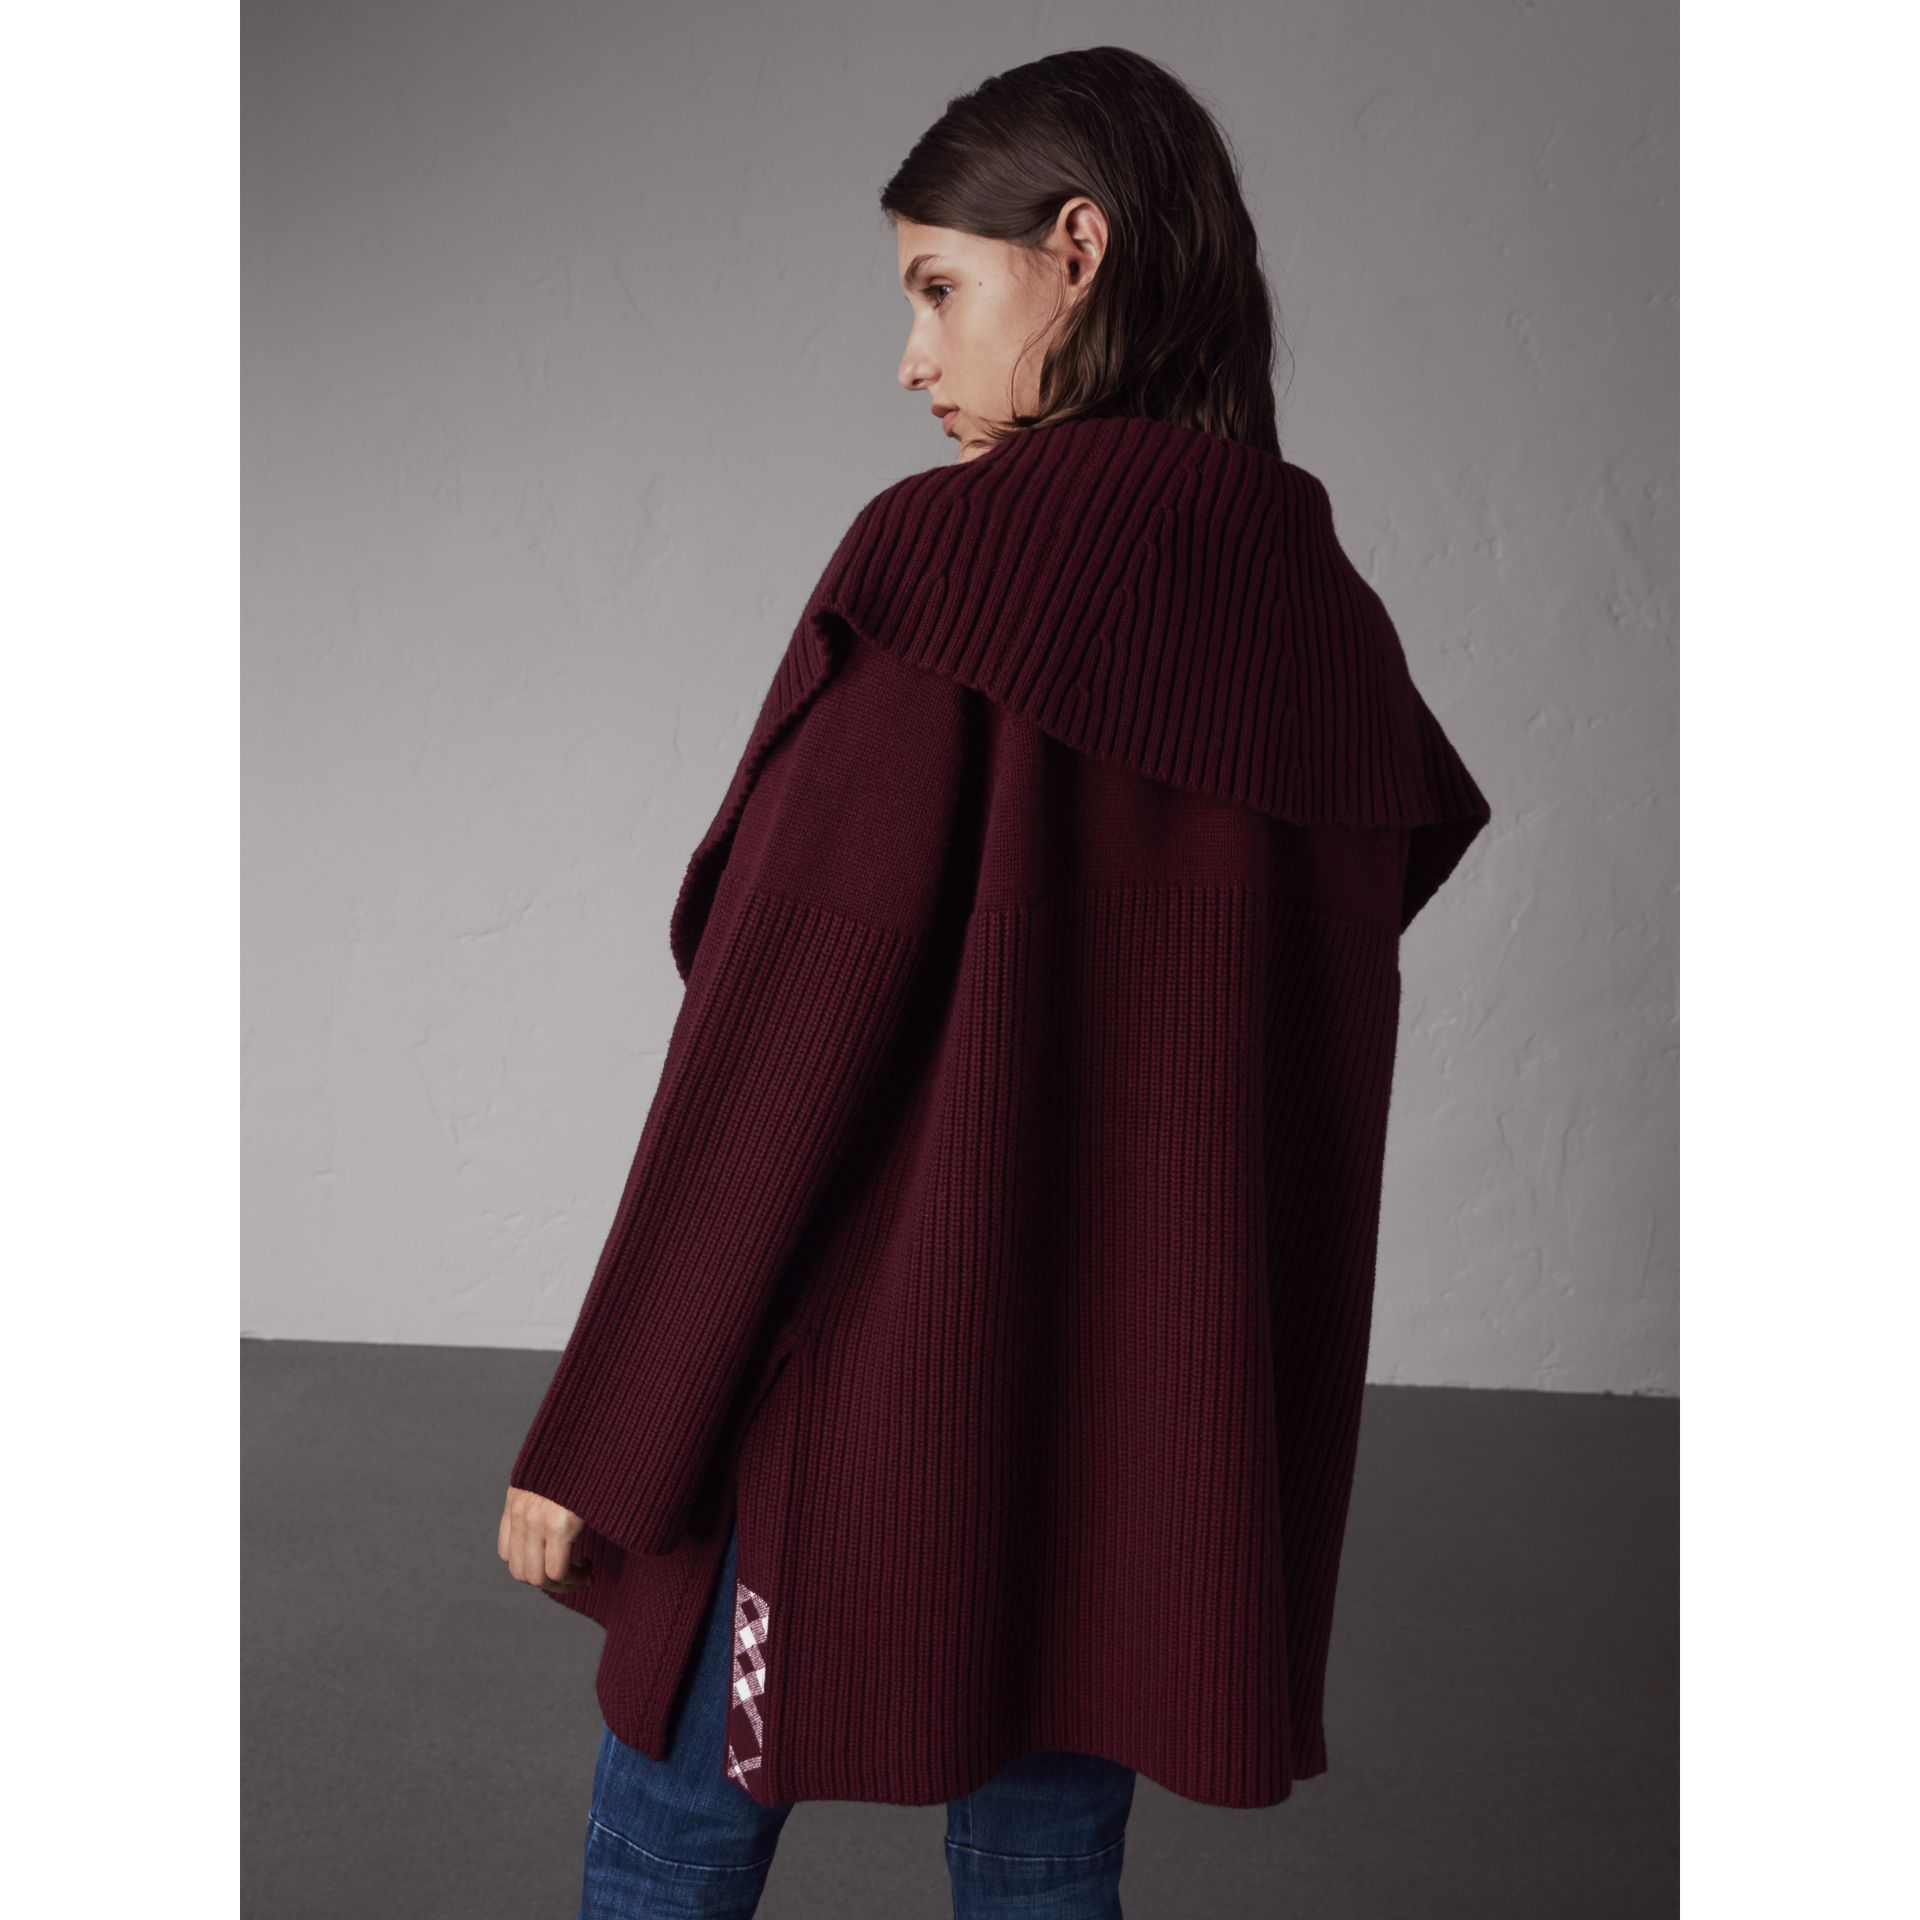 Ribbed Wool Cashmere Cardigan Coat in Burgundy - Women | Burberry United States - gallery image 3